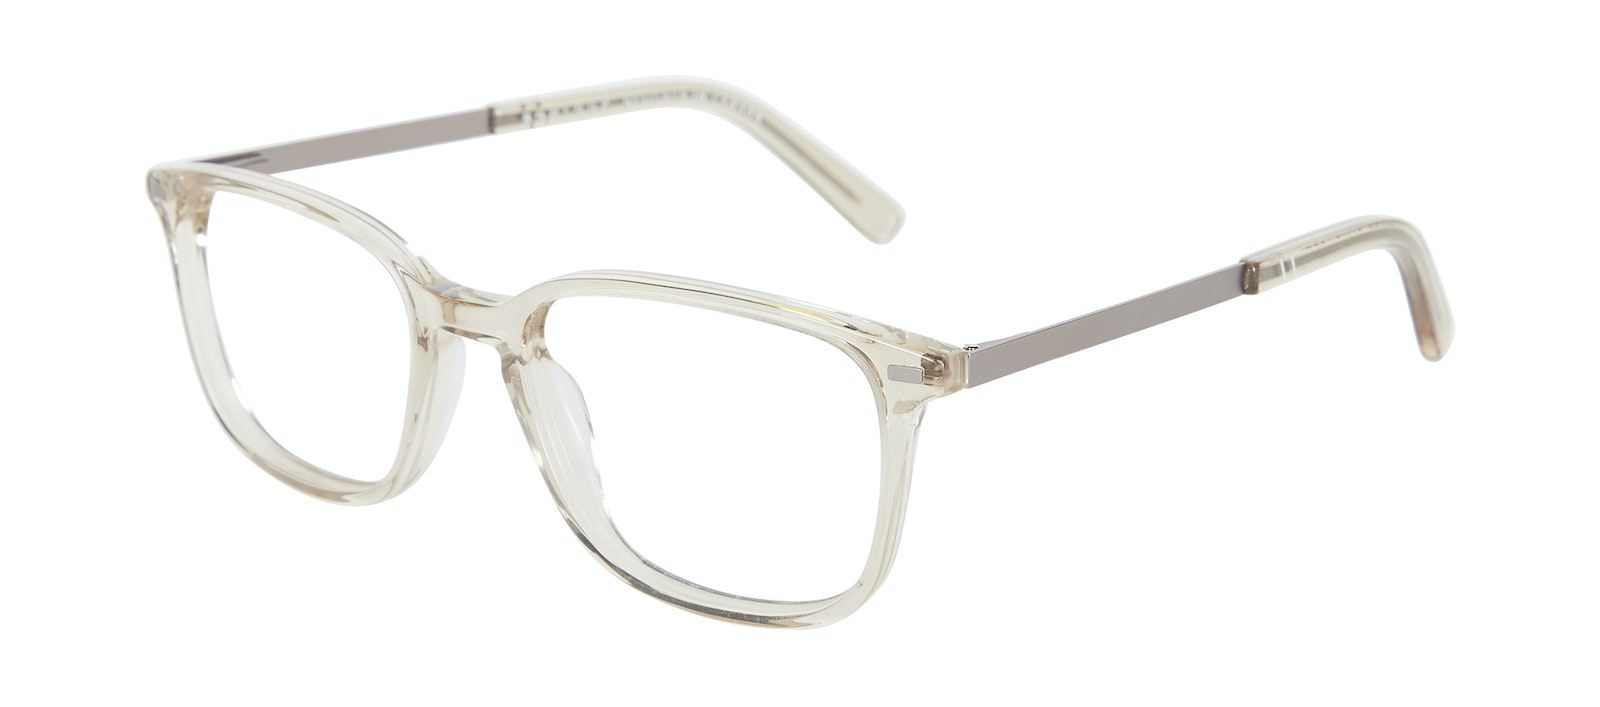 Affordable Fashion Glasses Rectangle Eyeglasses Men Sharp Olive Tilt